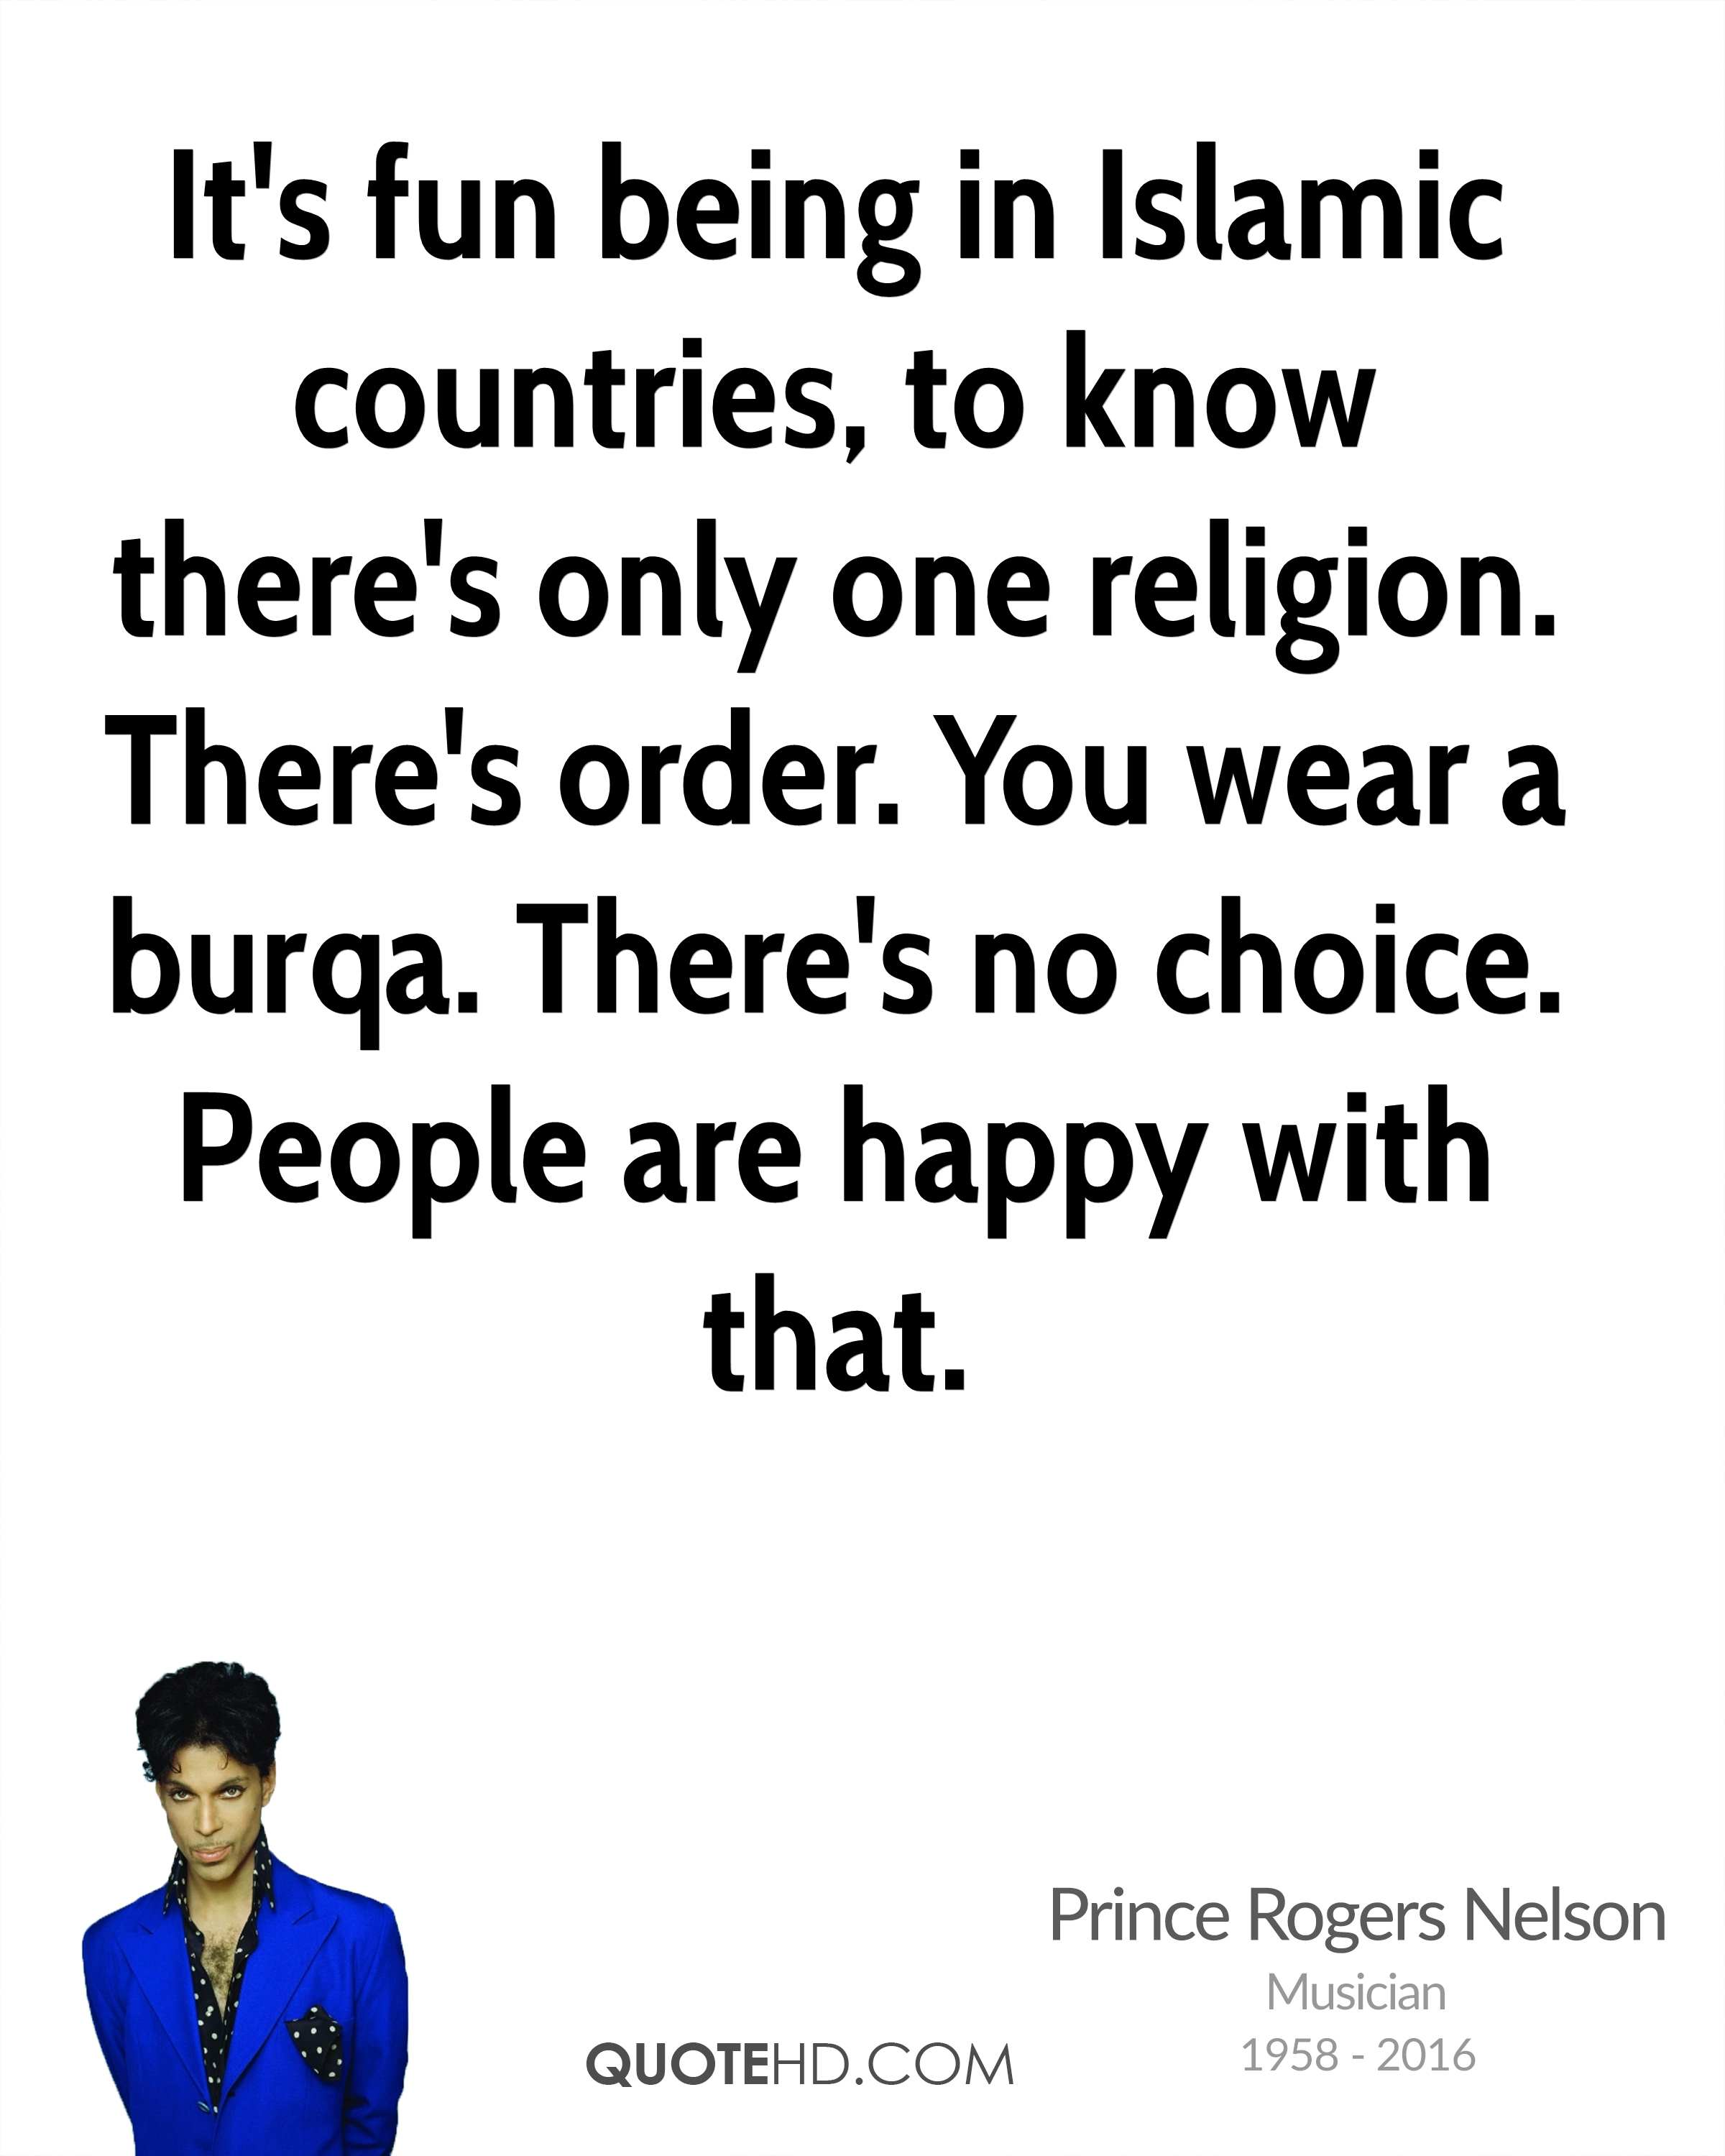 It's fun being in Islamic countries, to know there's only one religion. There's order. You wear a burqa. There's no choice. People are happy with that.